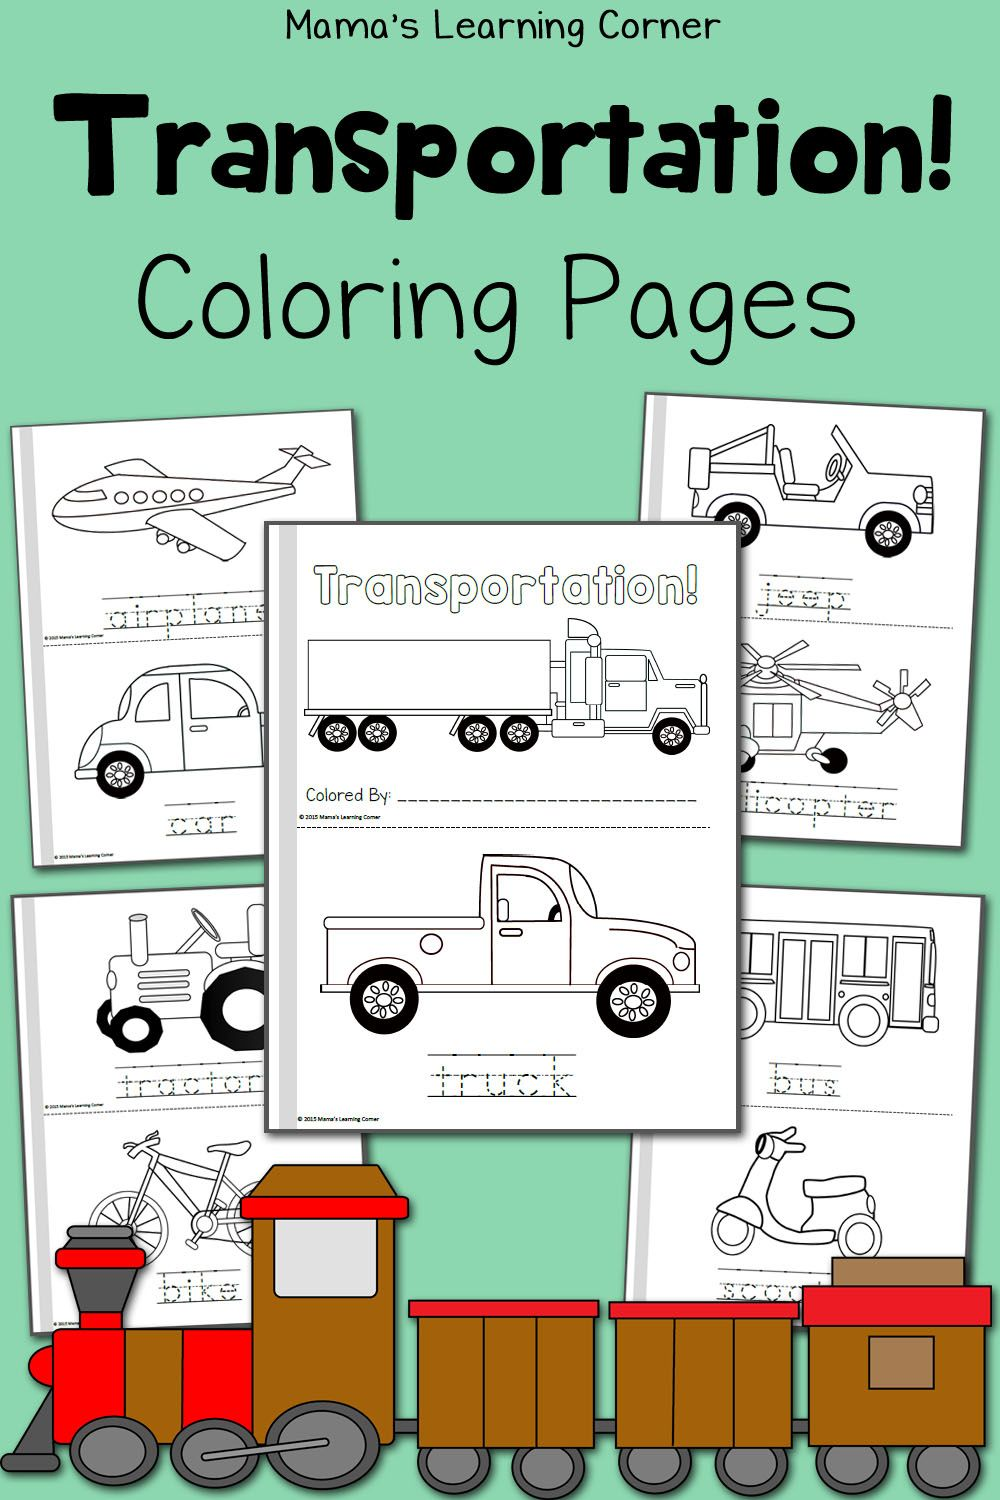 Transportation Coloring Pages | Transportation theme ... | transportation coloring pages for preschool